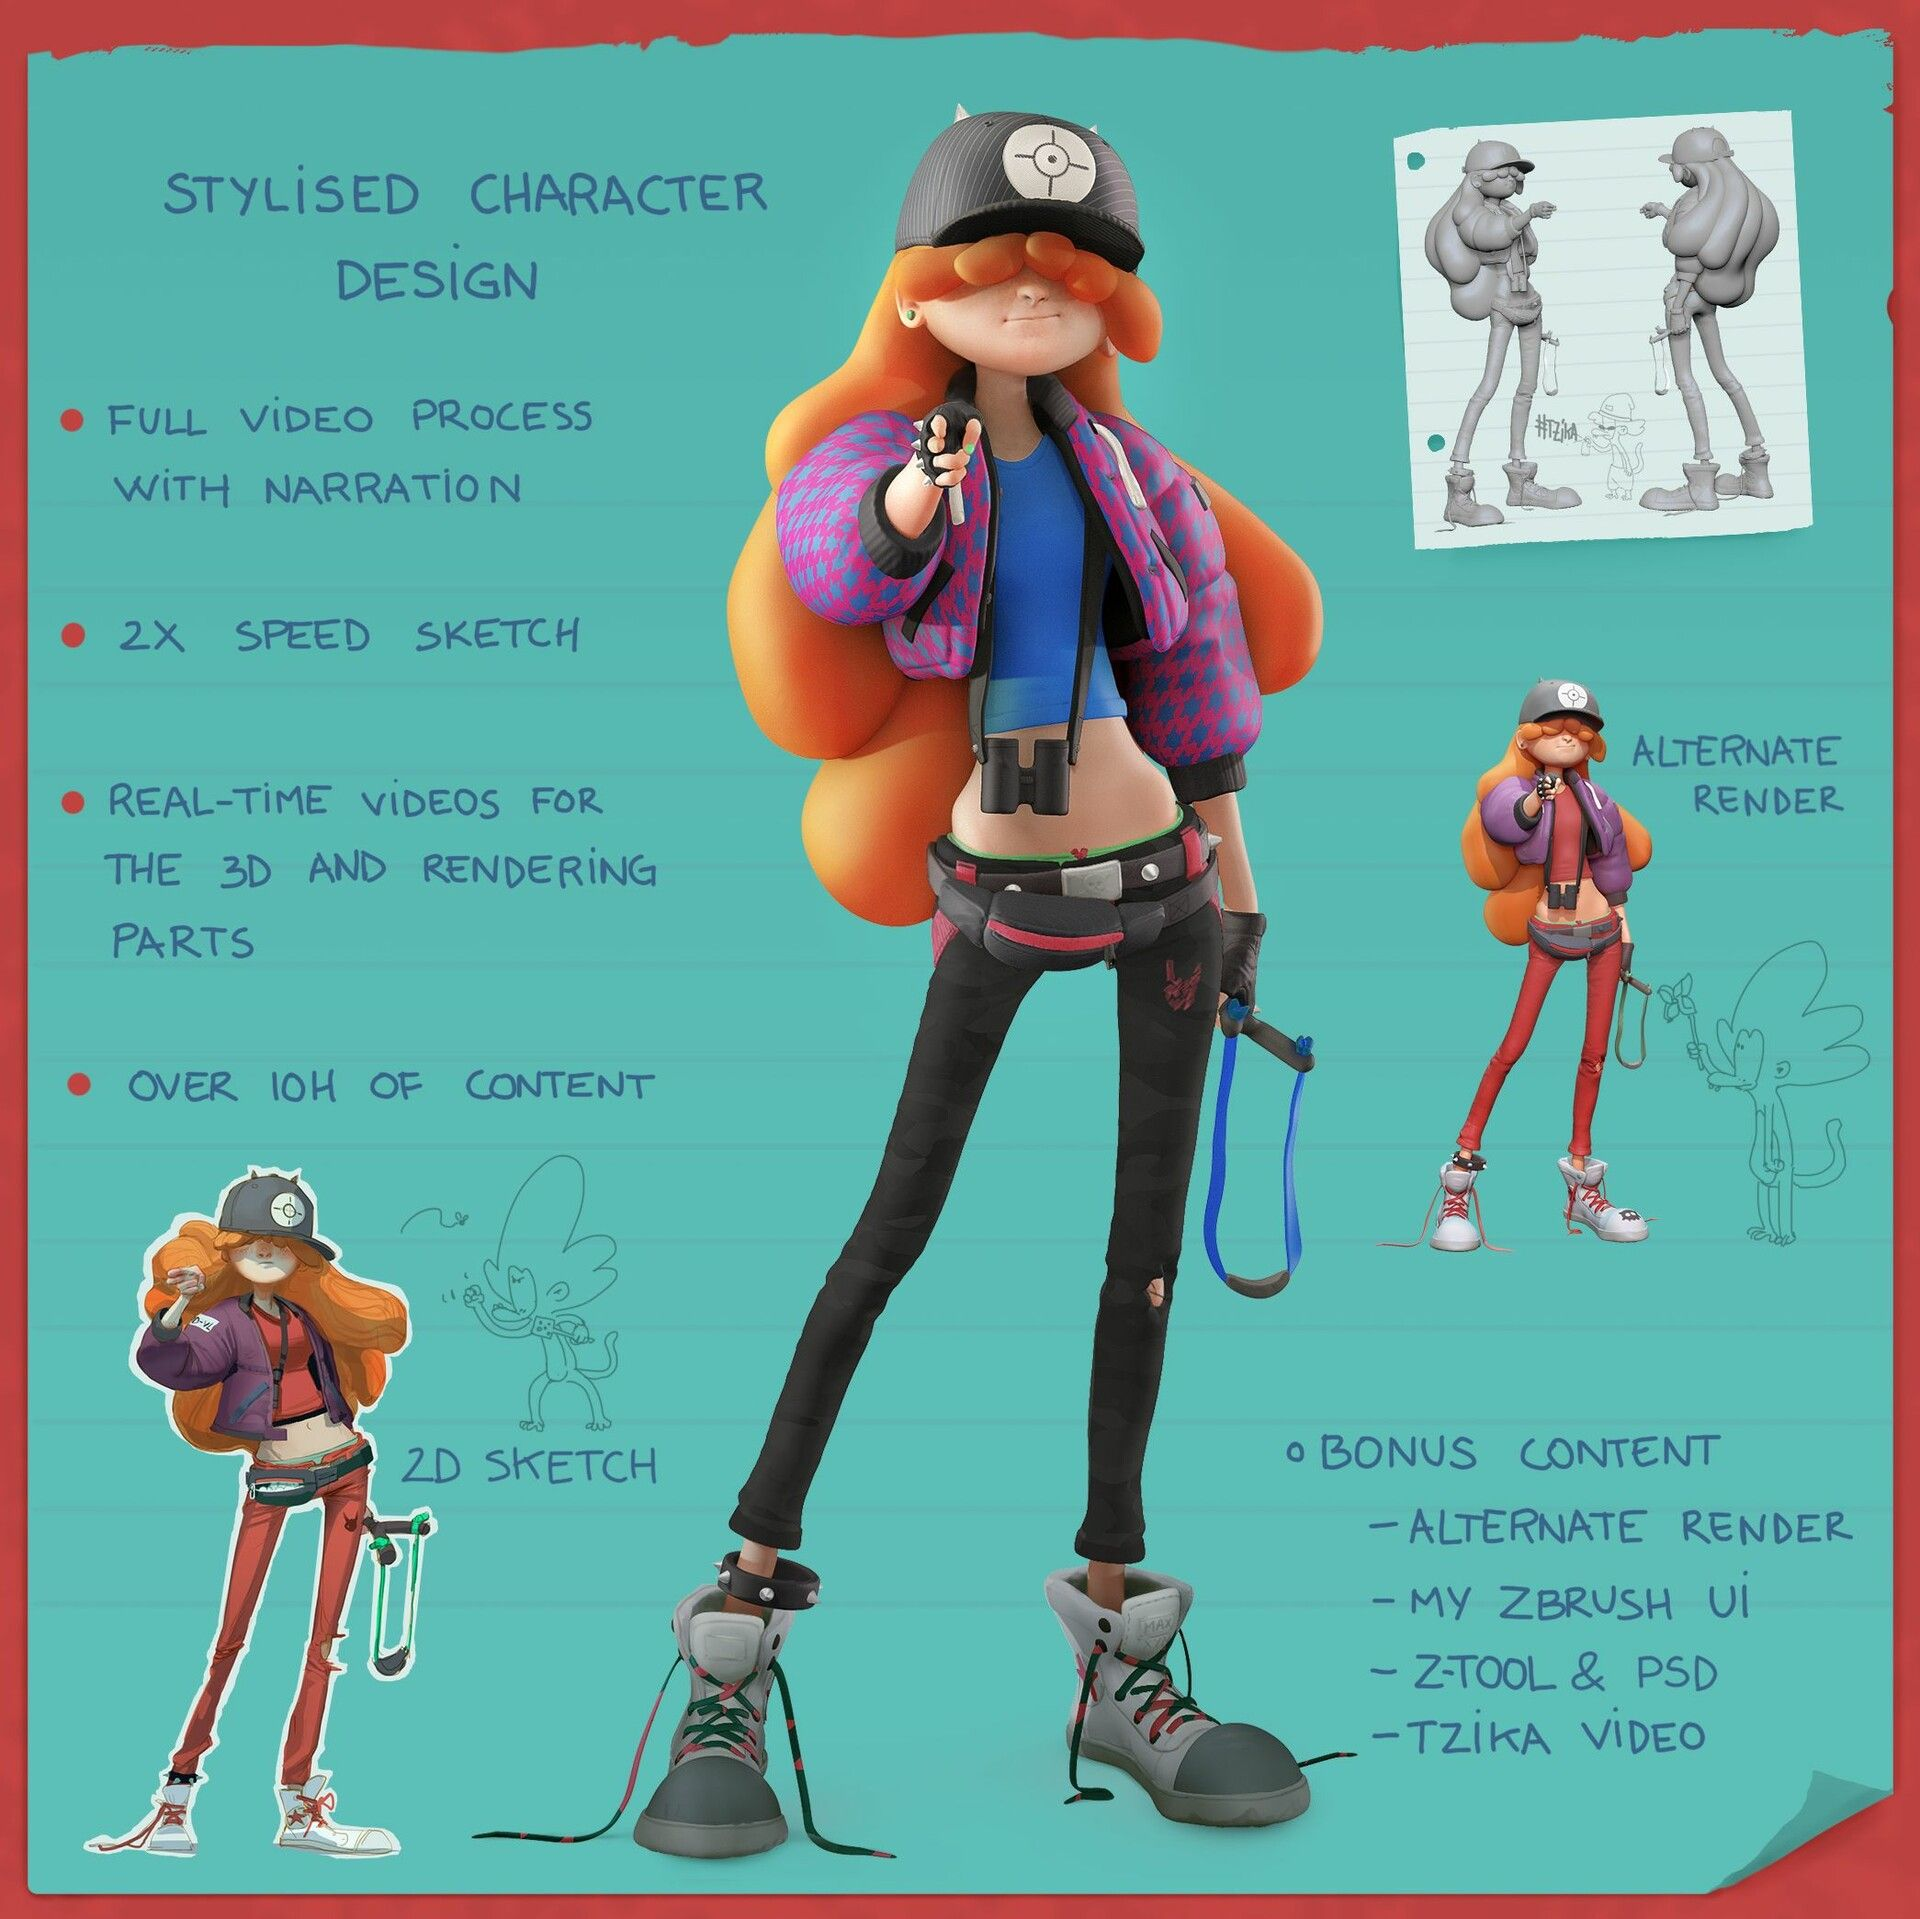 ArtStation - GUMROAD - Stylized Character Design in 2d and 3d, Alex